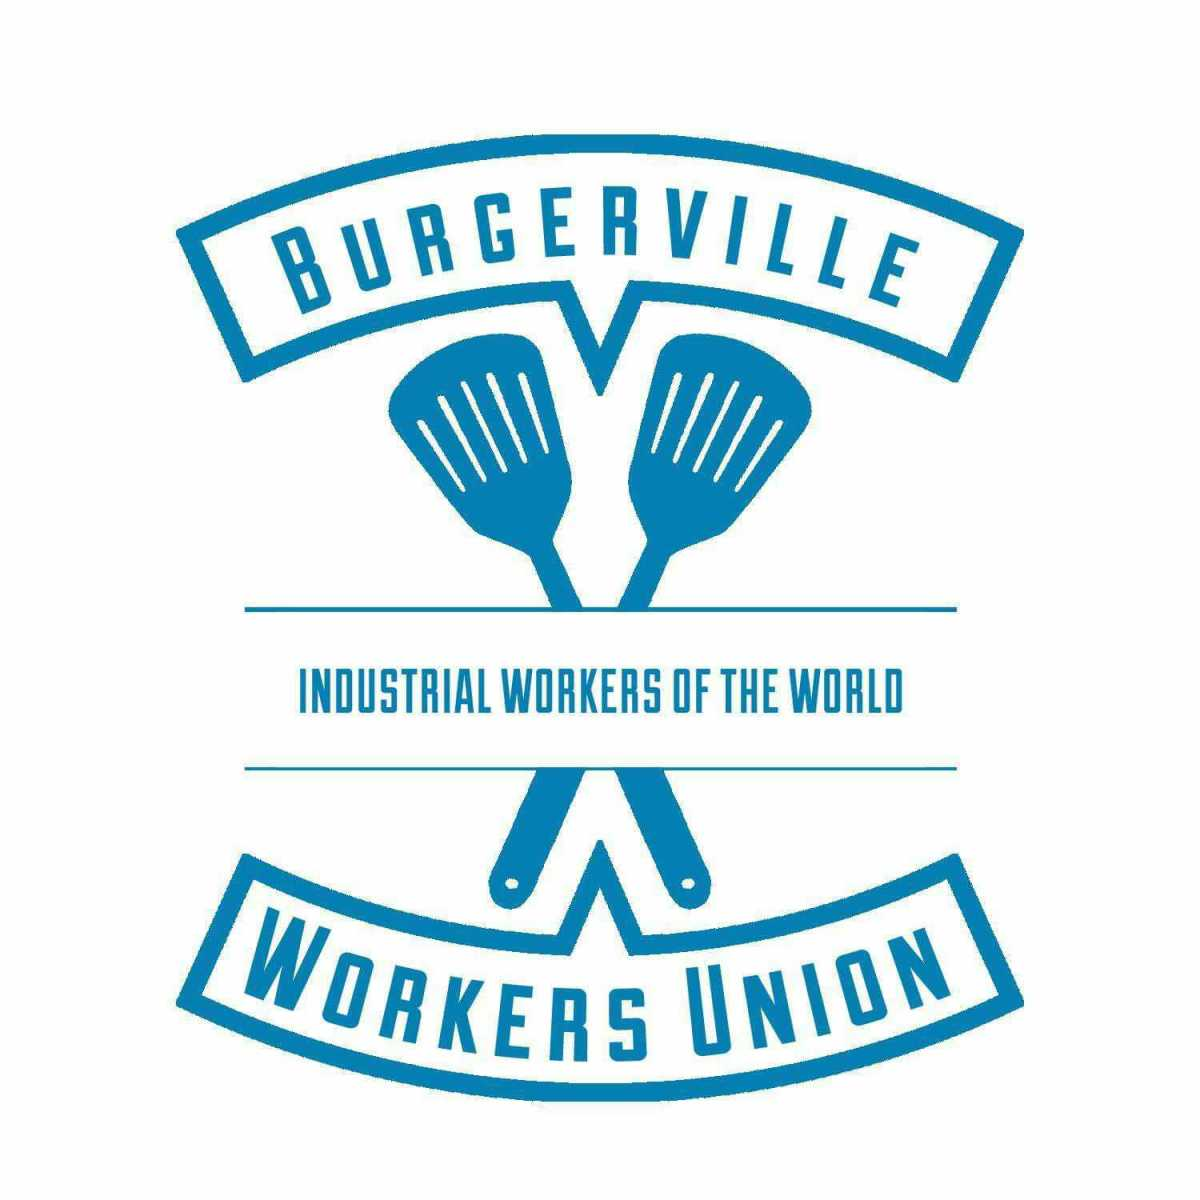 Burgerville Workers Union with Emmett and Nate